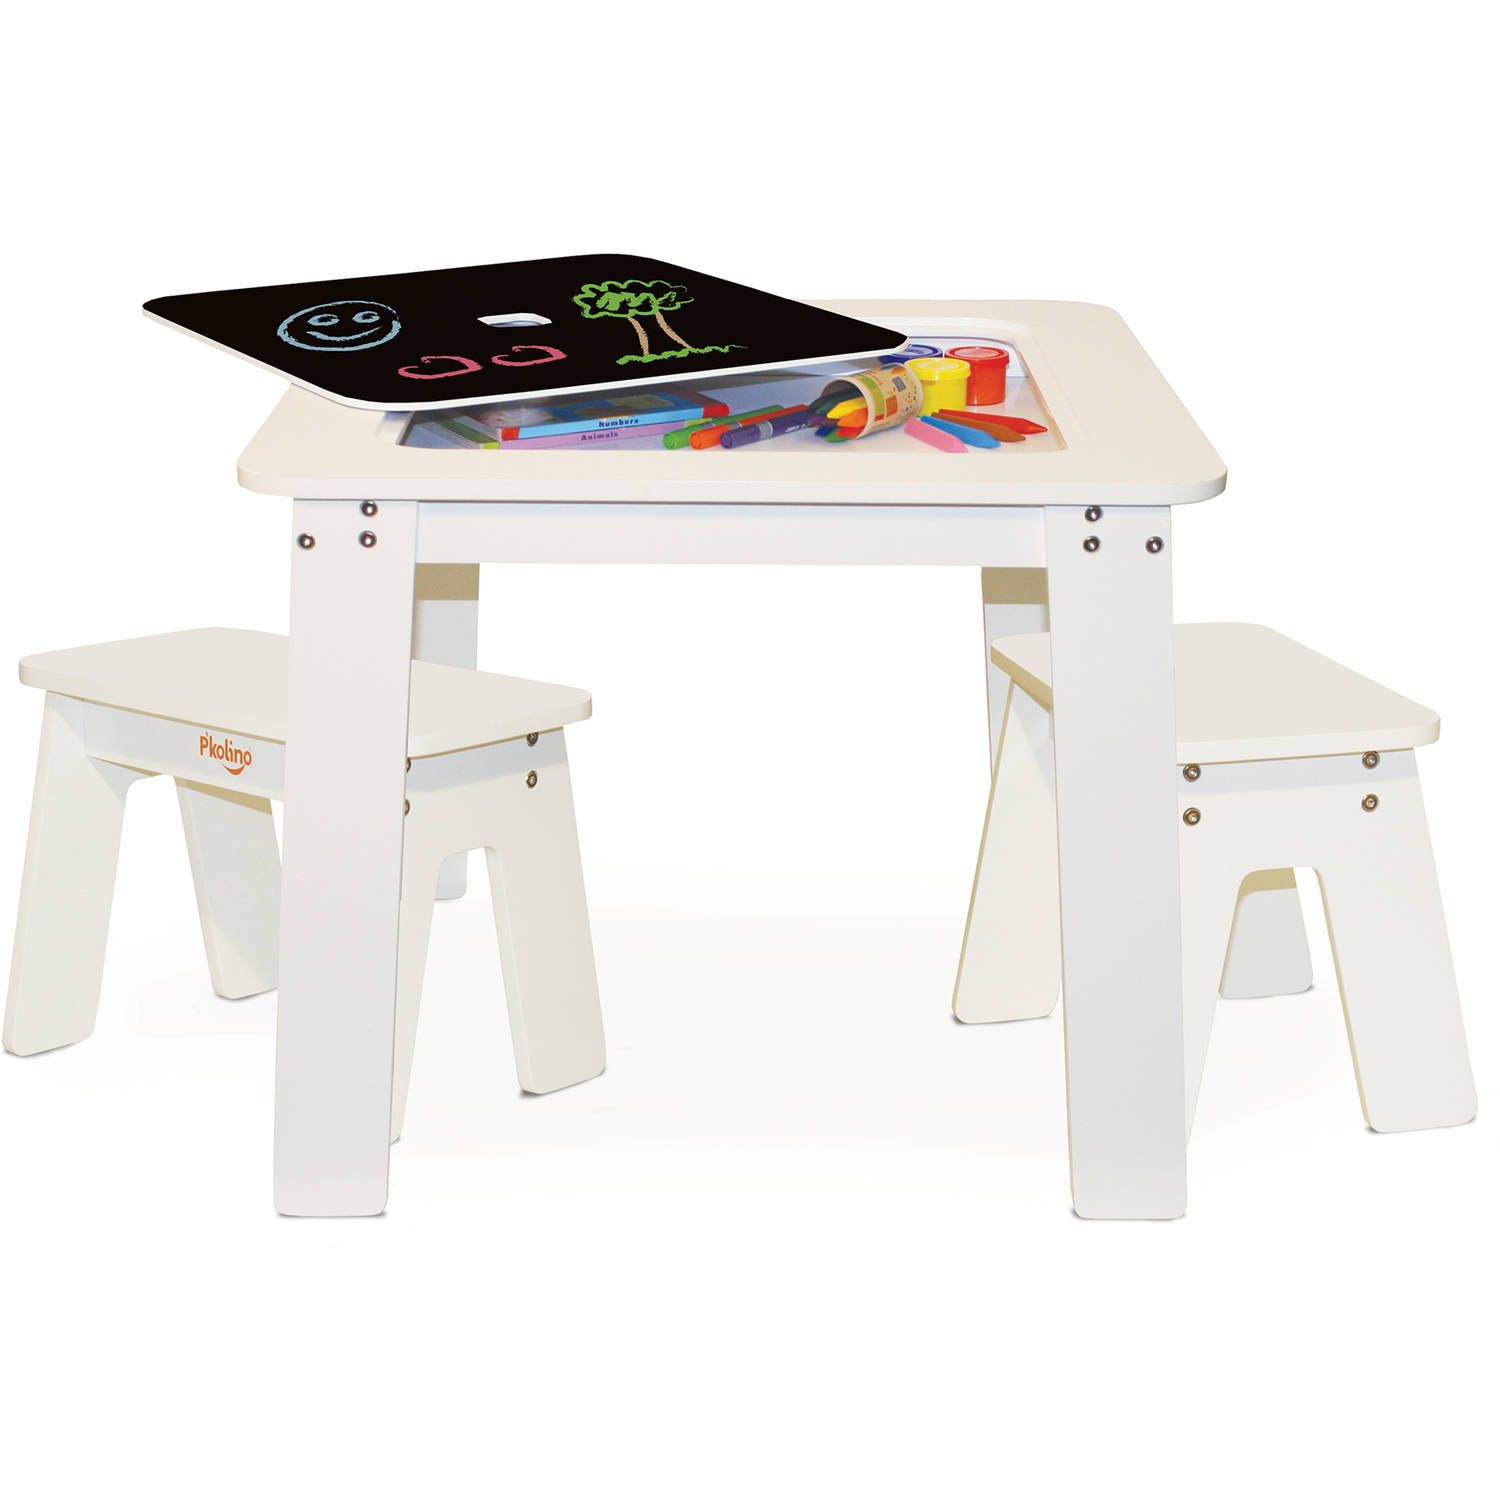 P'kolino Kids Chalk Table and Stools Set with Storage, White